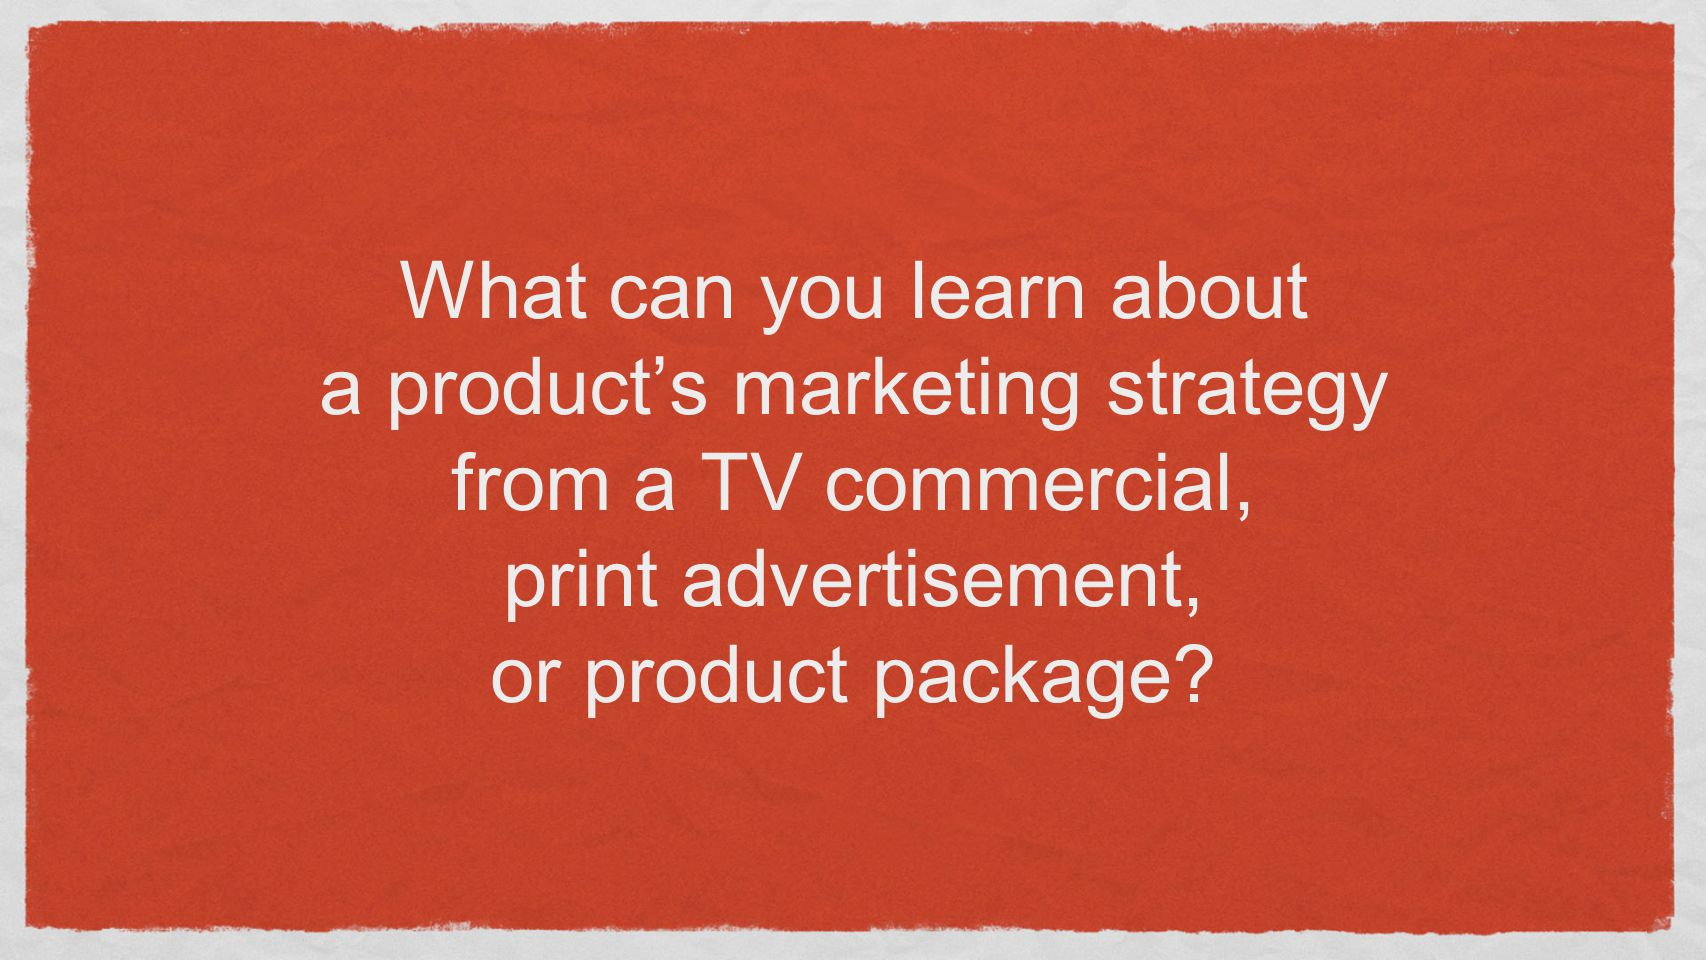 What can you learn about a product's marketing strategy from a TV commercial, print advertisement, or product package?